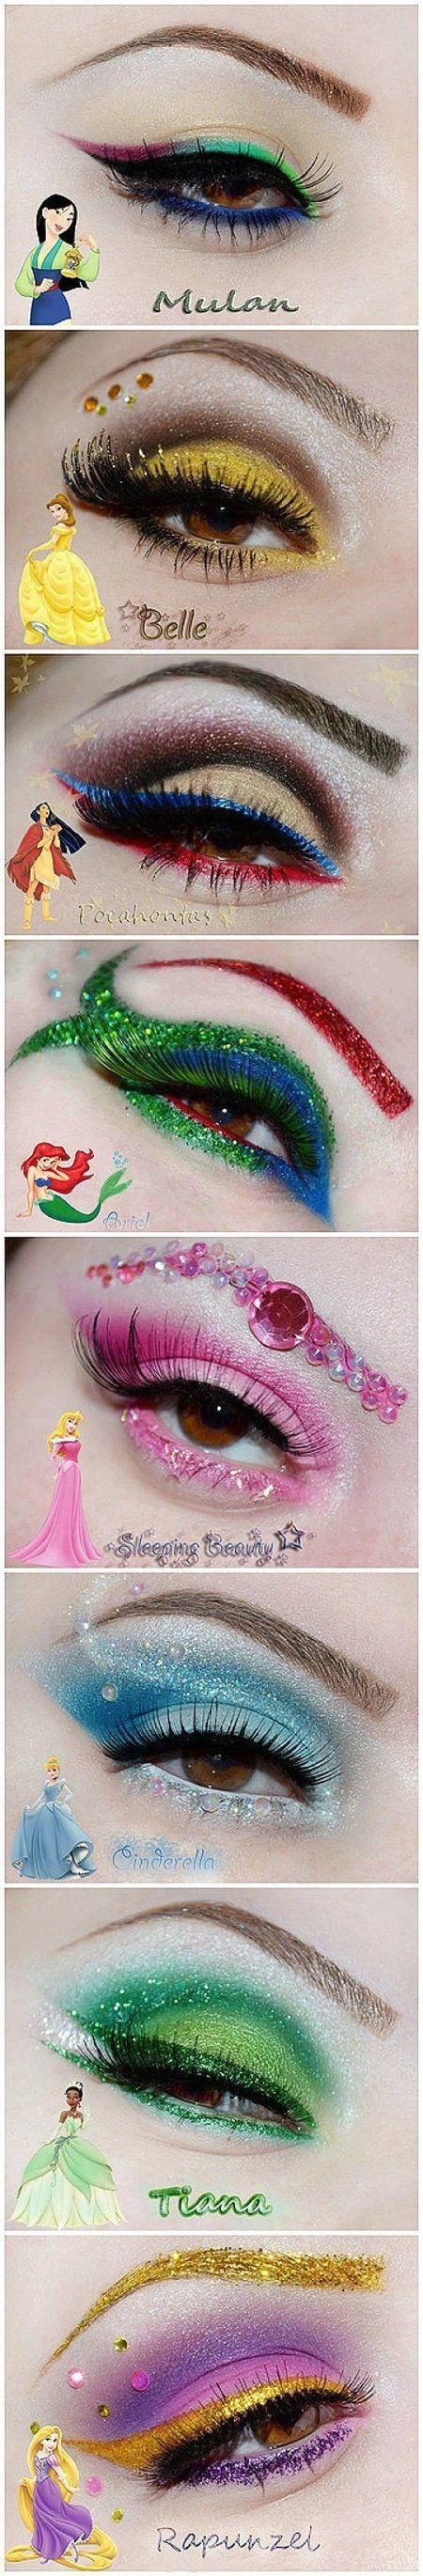 Disney Princess Makeup: